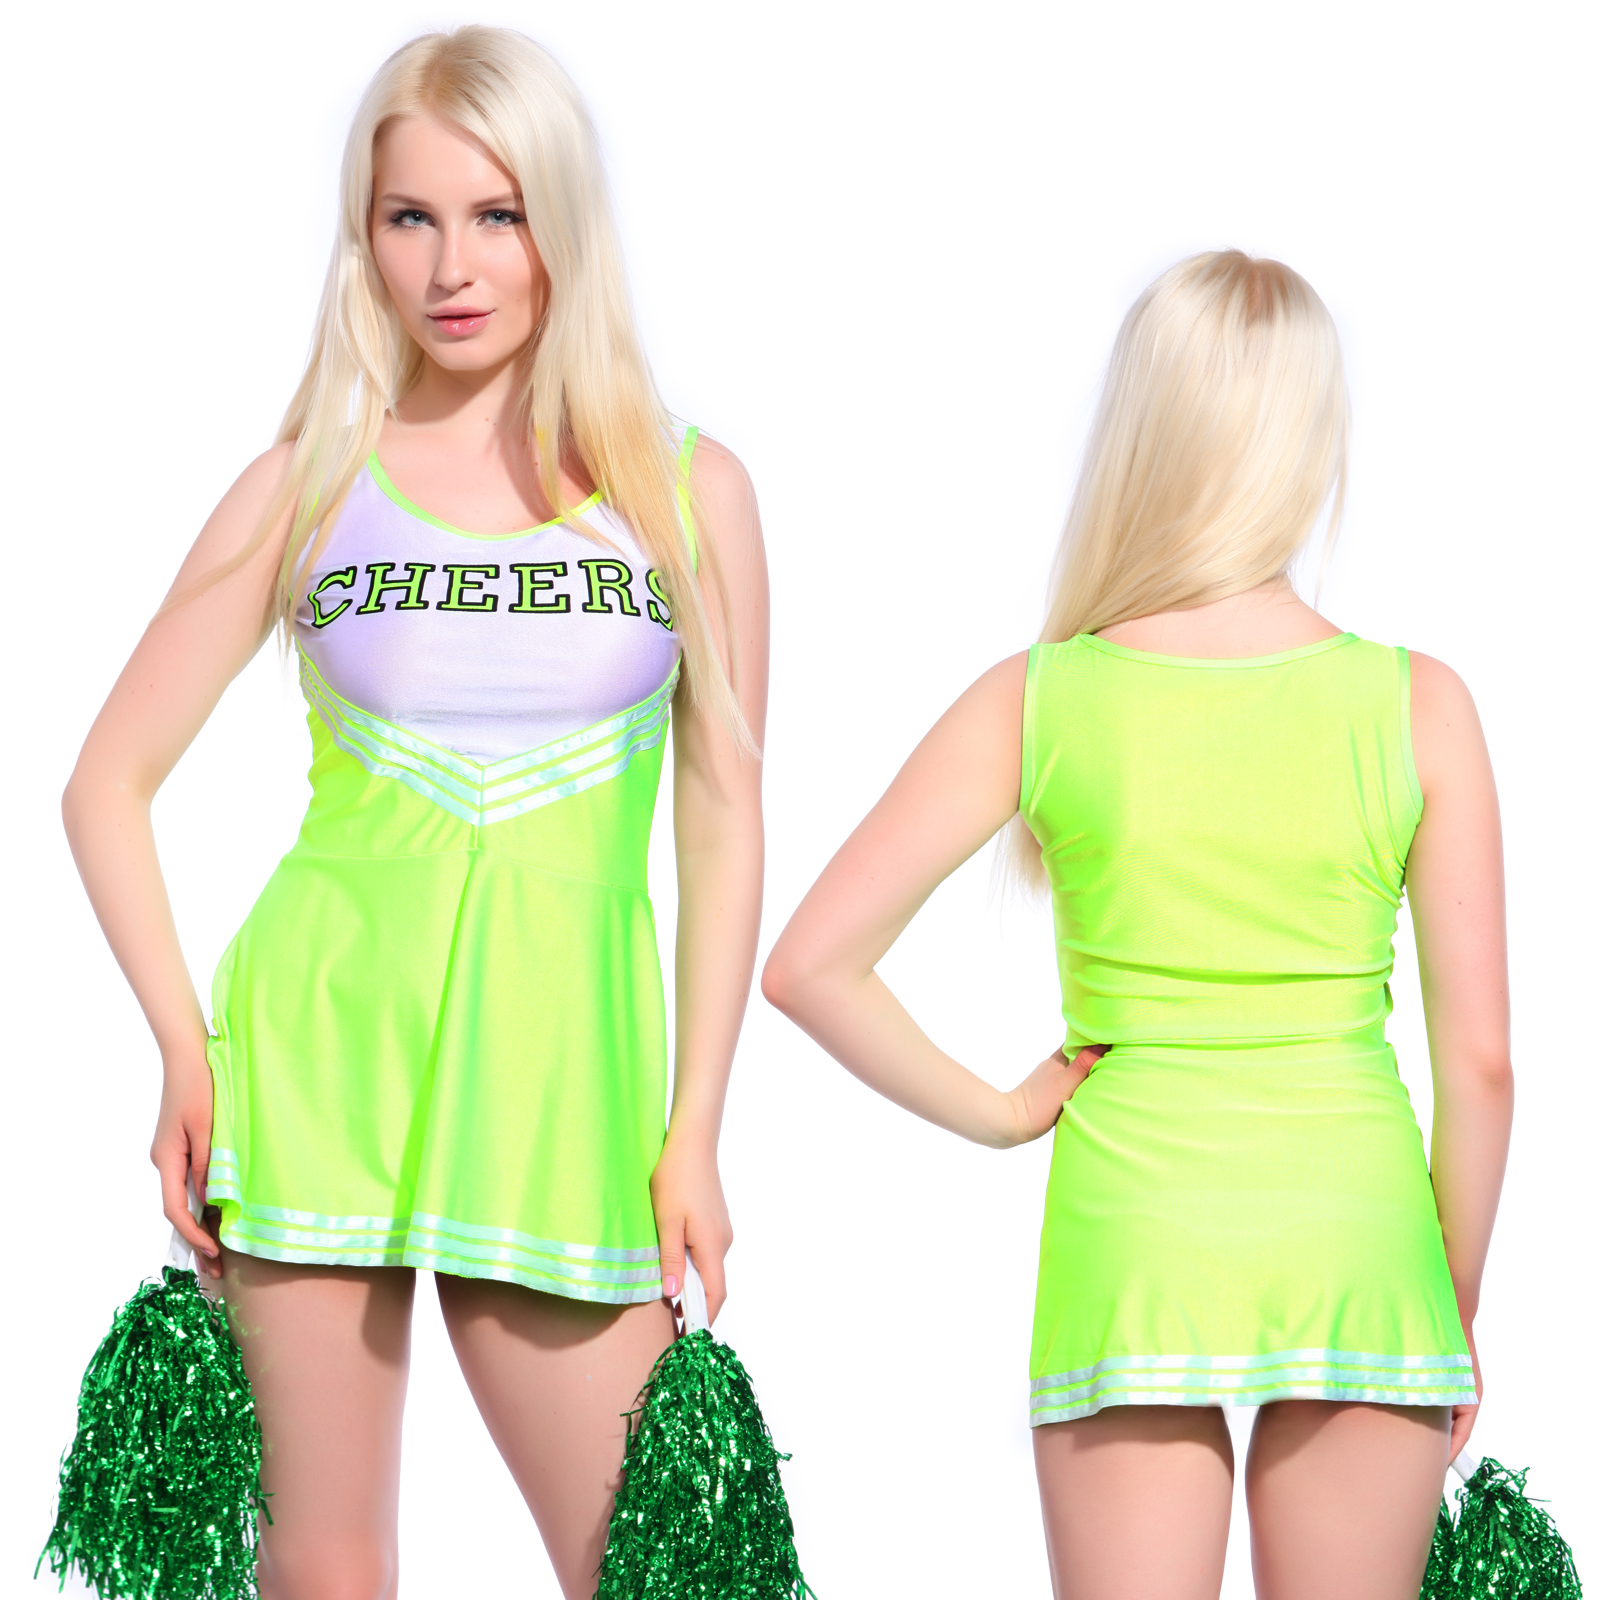 Girls glee cheerleader clothes outfit ladies cheerleading costumes girls glee cheerleader clothes outfit ladies cheerleading costumes solutioingenieria Images